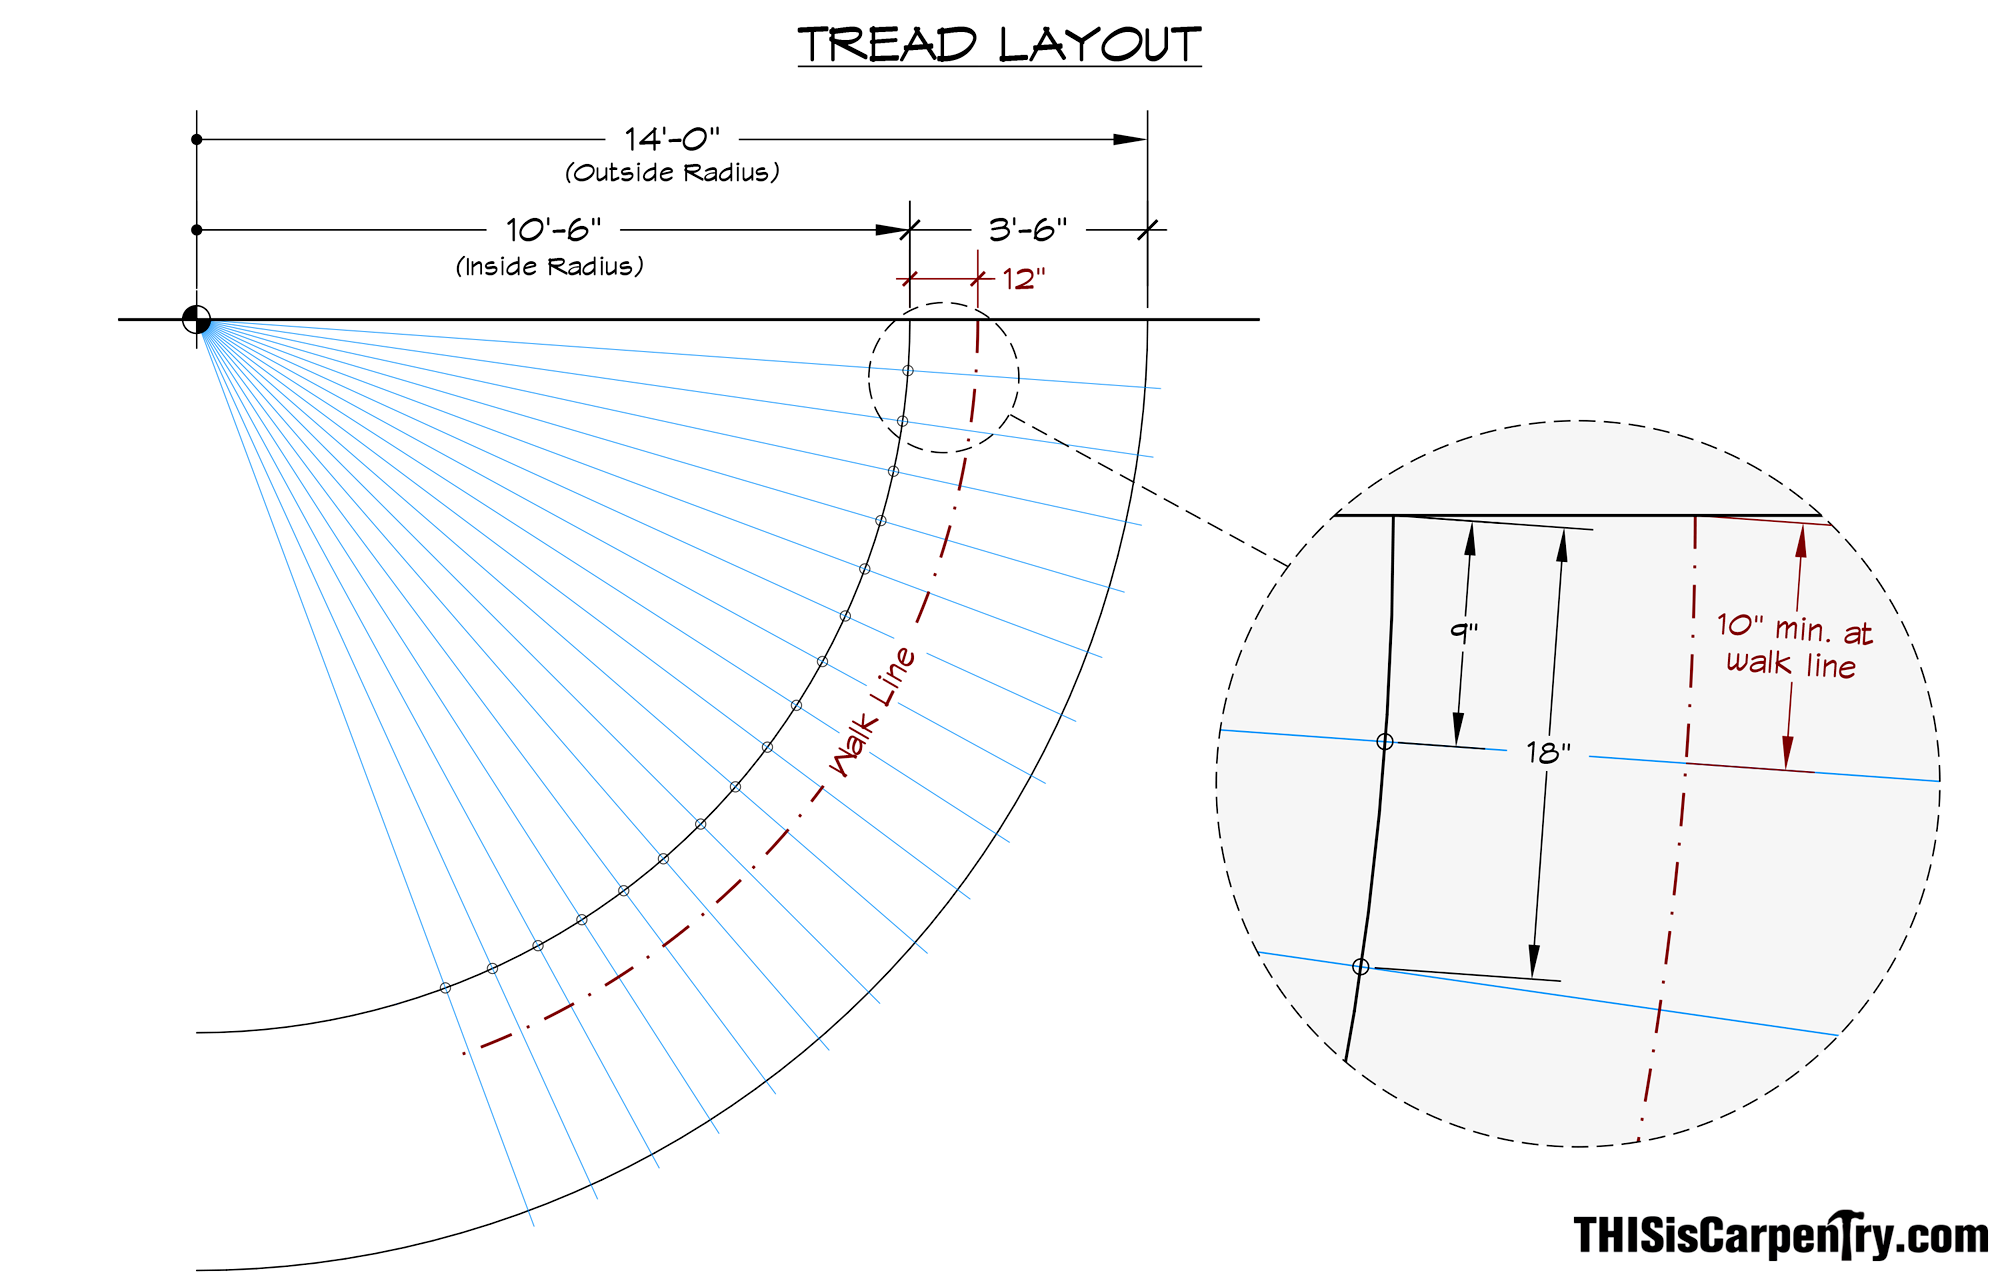 Tread layout-1